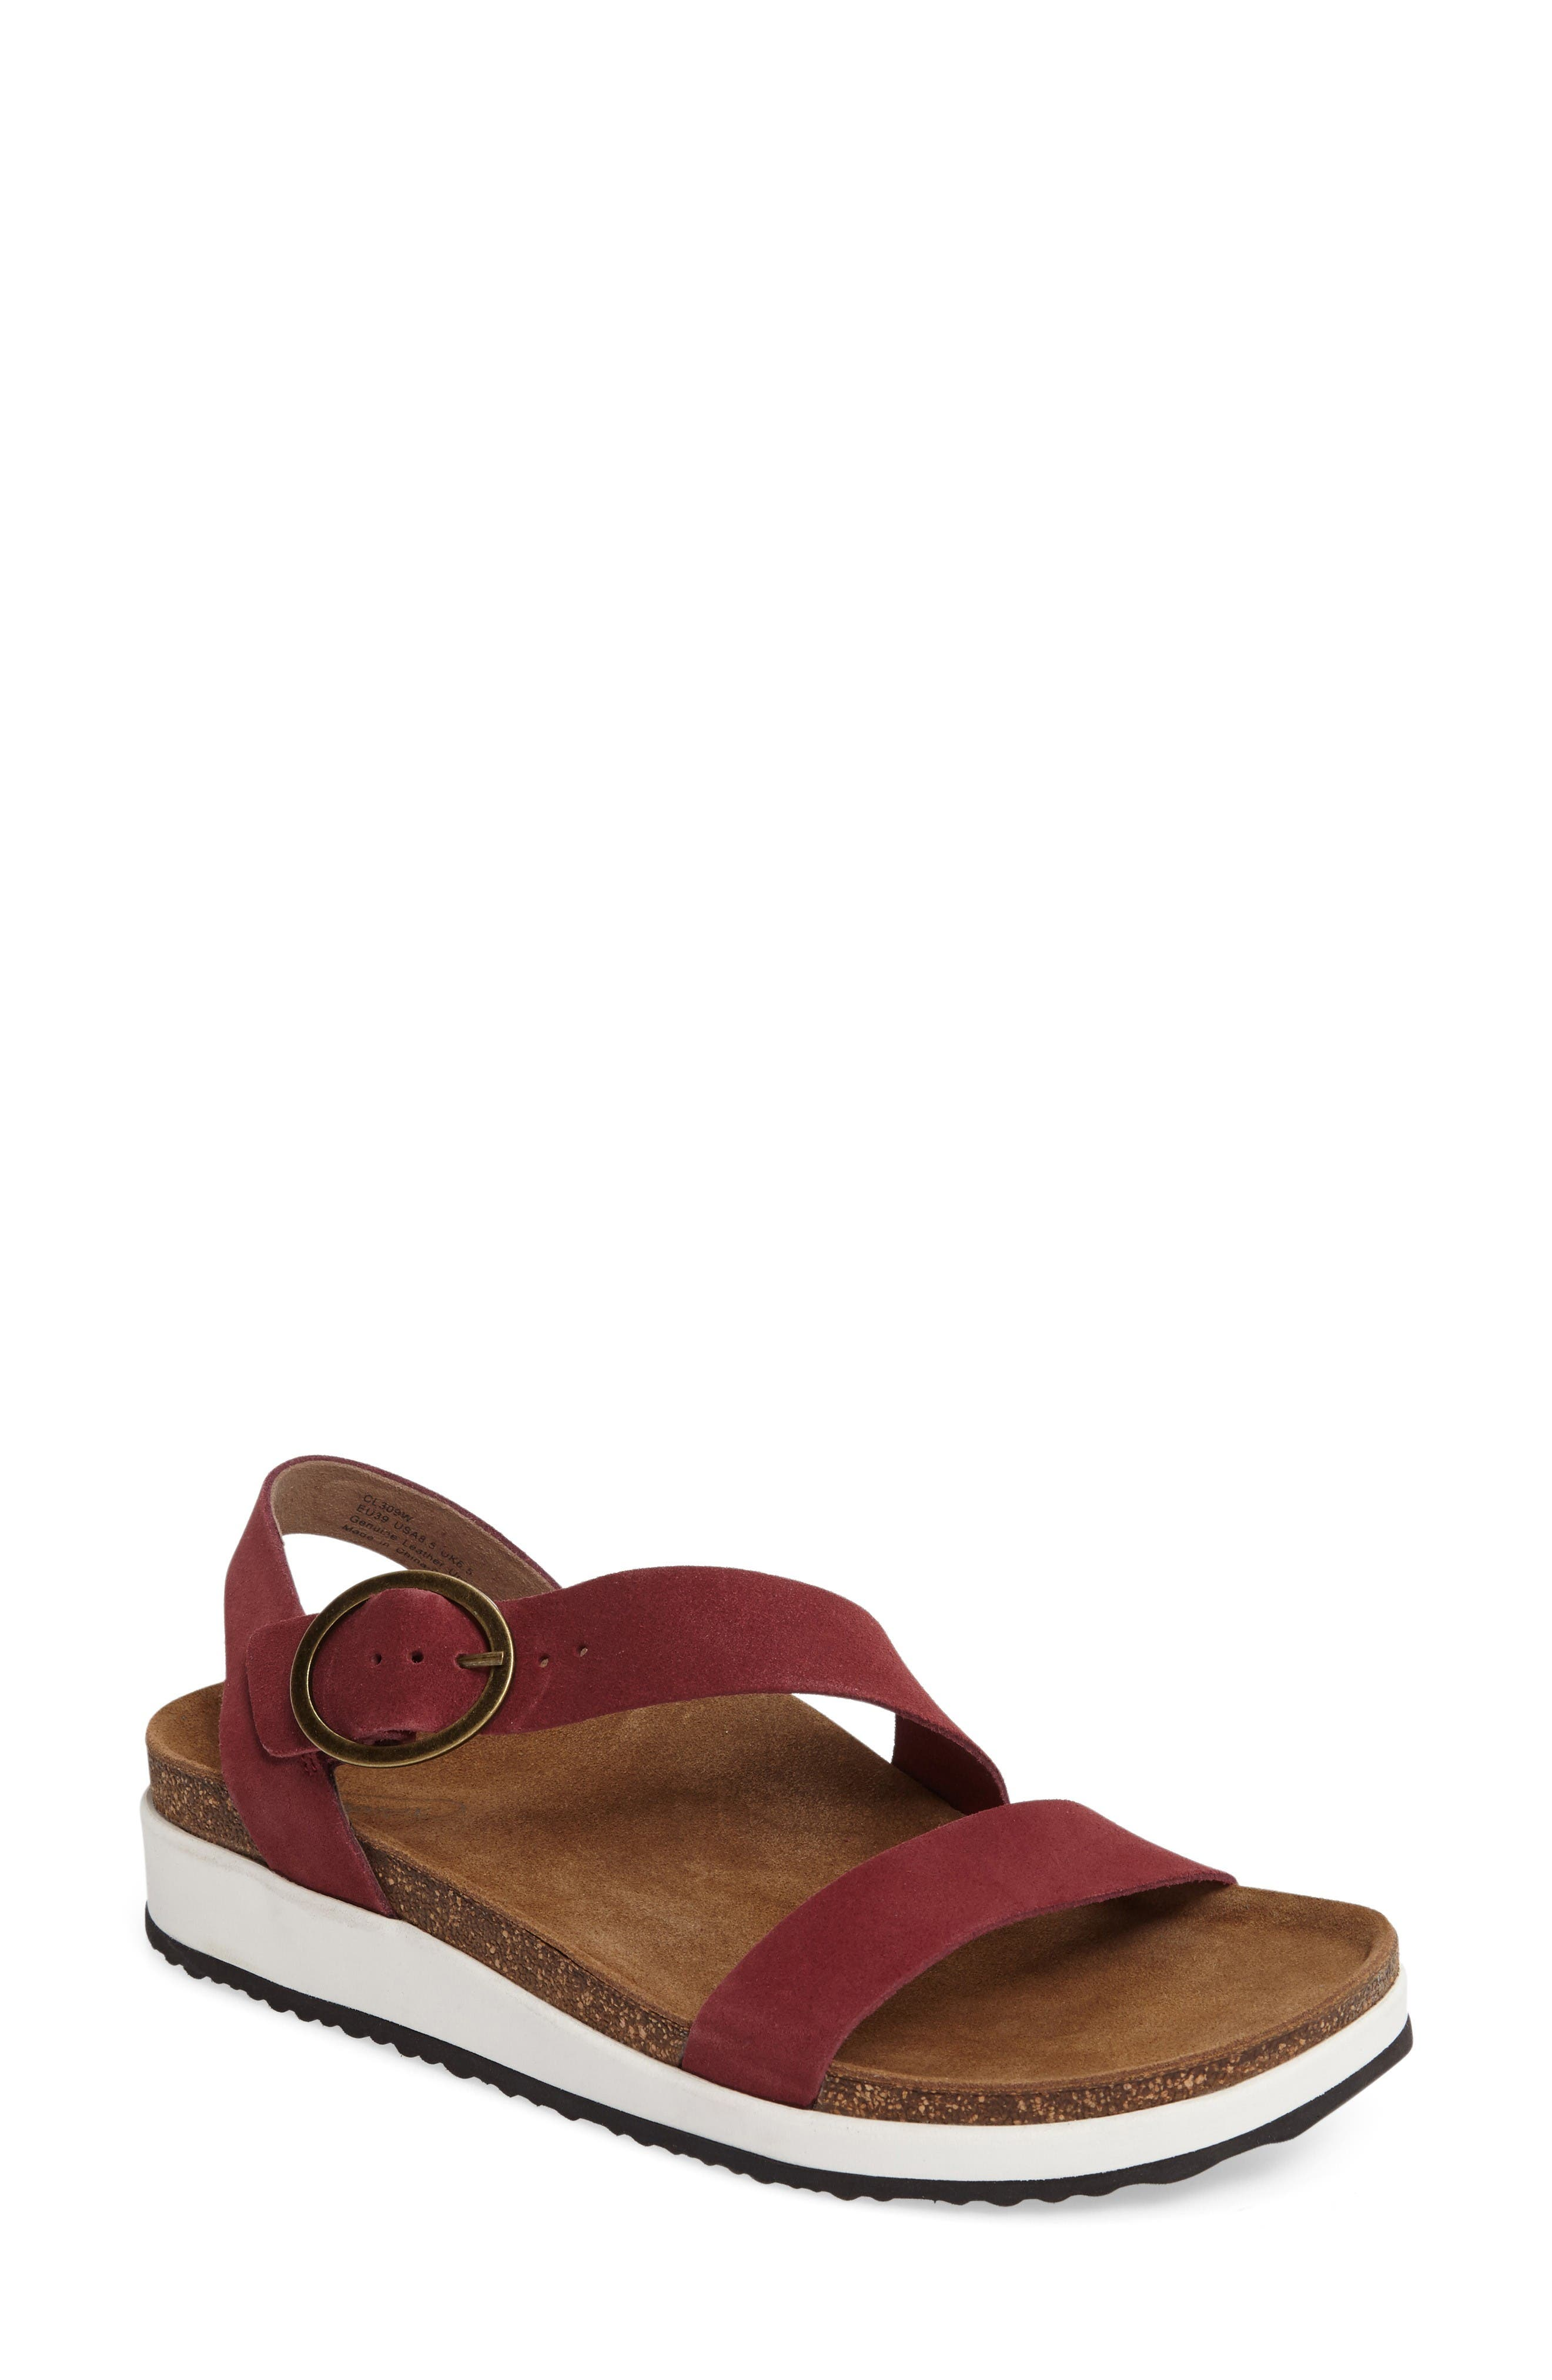 Adrianna Sandal,                             Main thumbnail 1, color,                             Maroon Suede